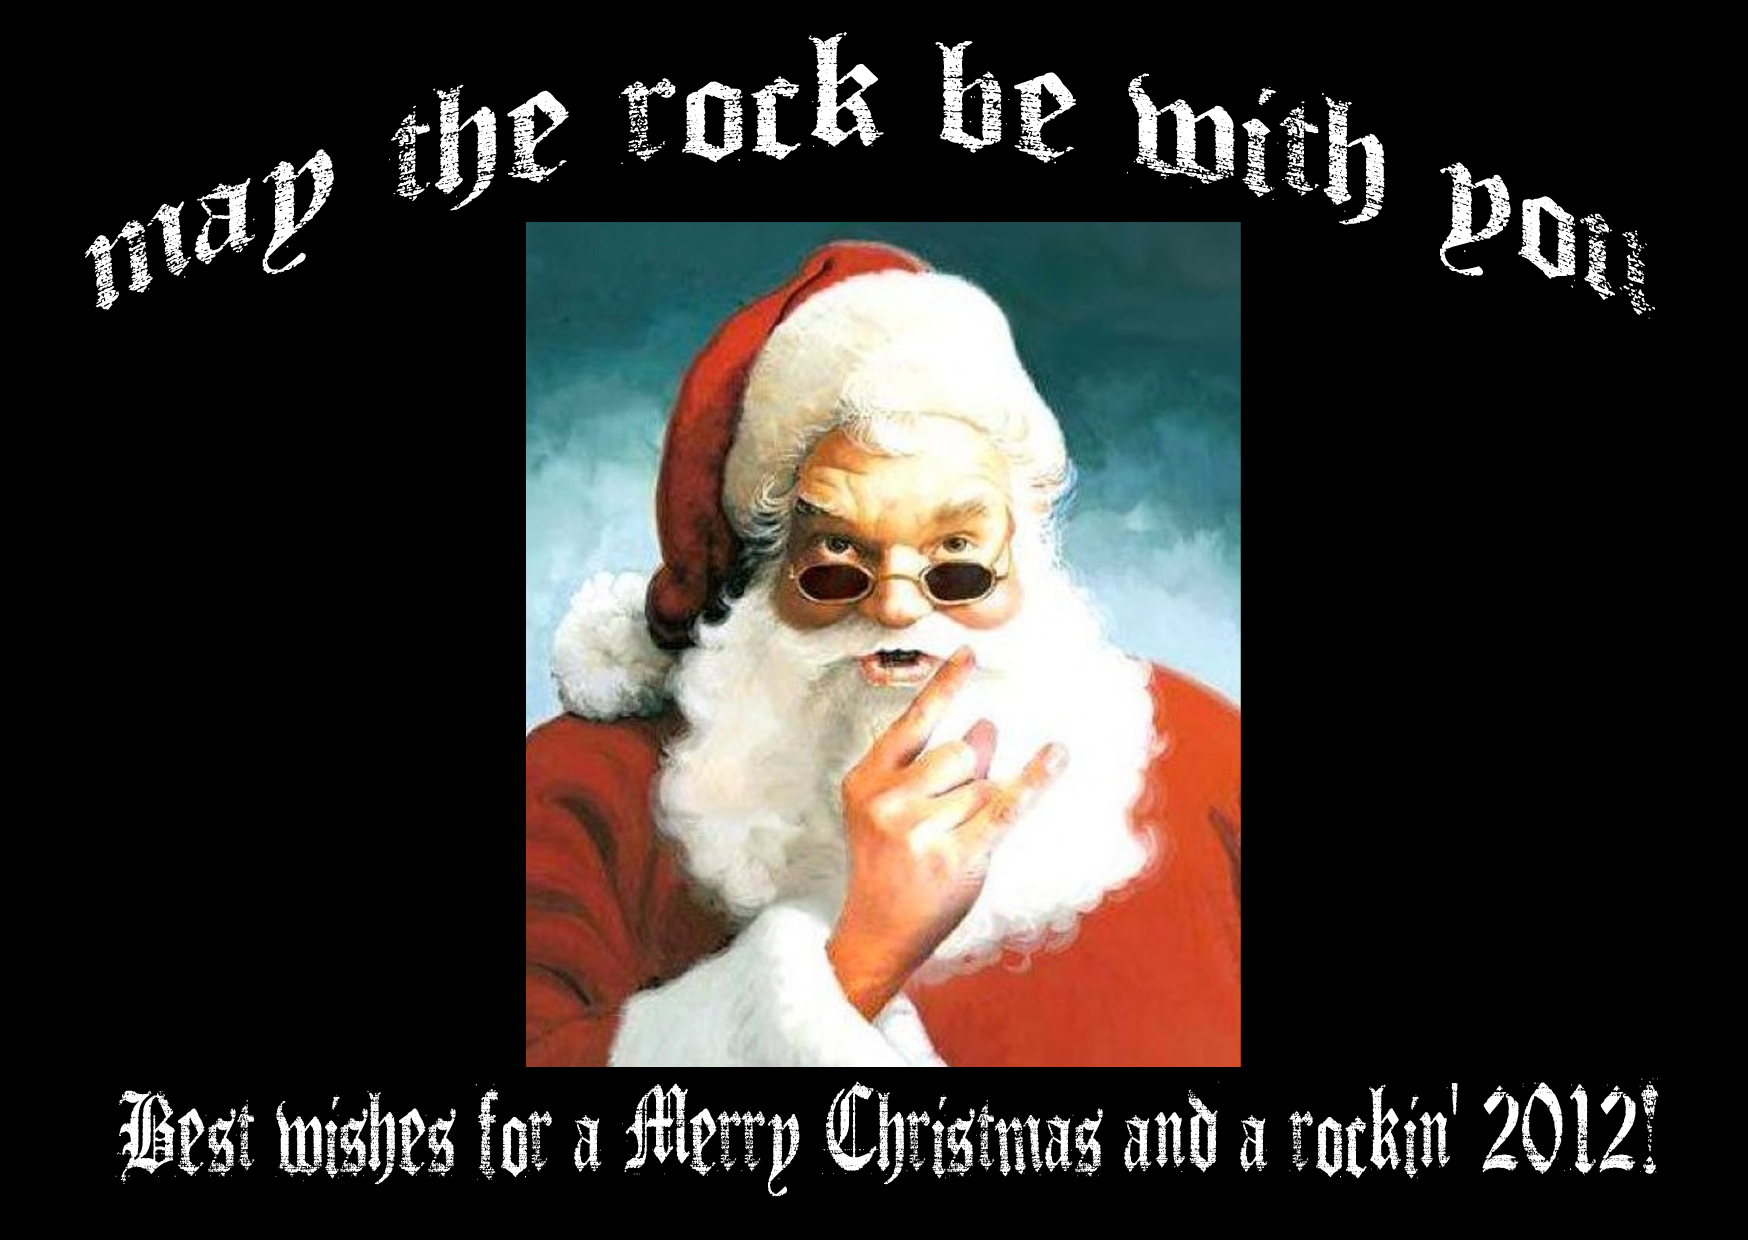 Merry Christmas and Best Wishes for 2012!